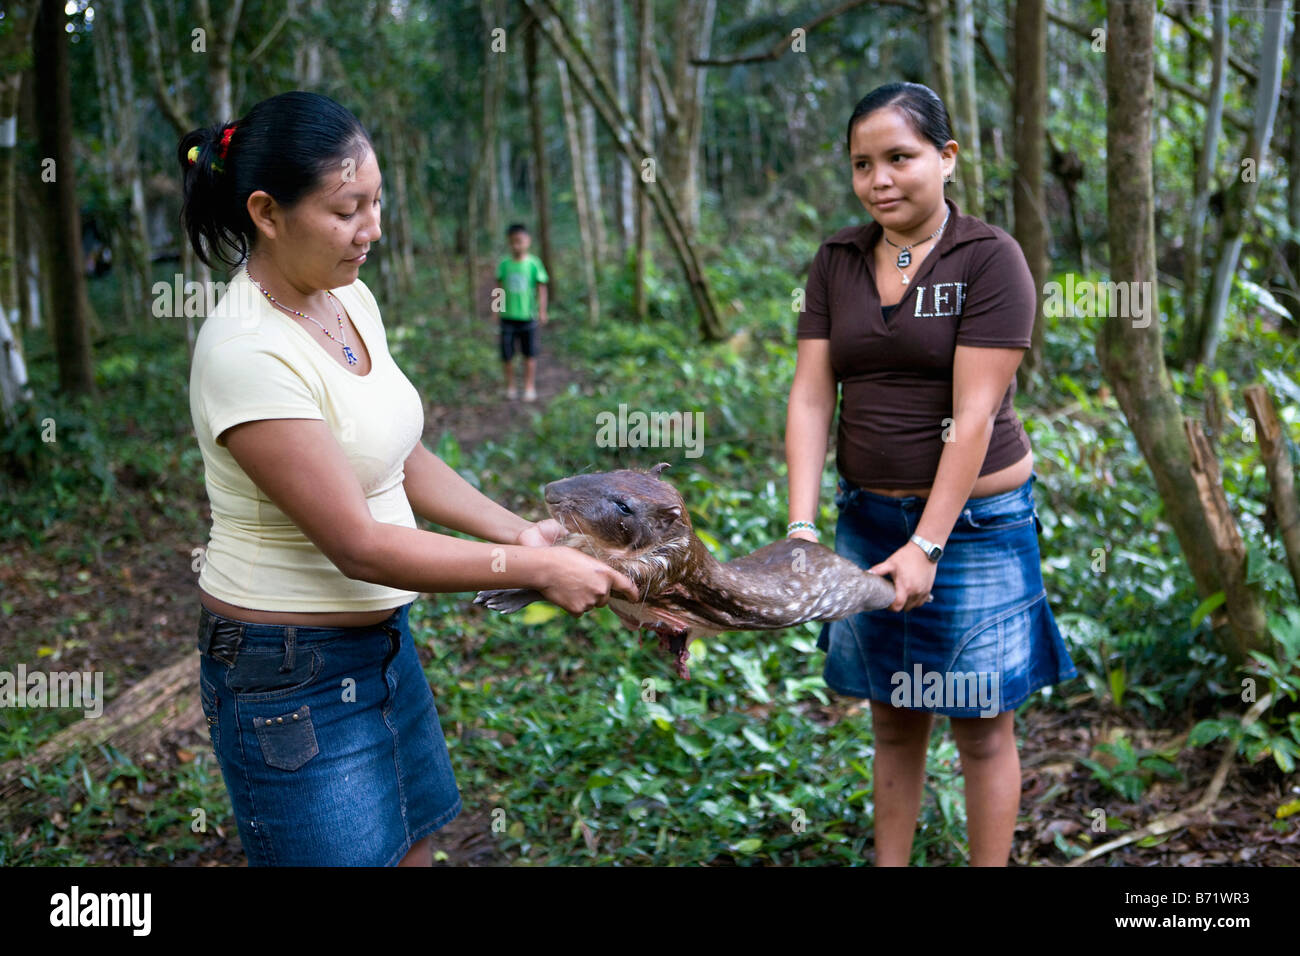 Suriname, Kwamalasamutu, Trio women with hunted paca ( Agouti paca), also known as Spotted Paca, a large rodent. - Stock Image